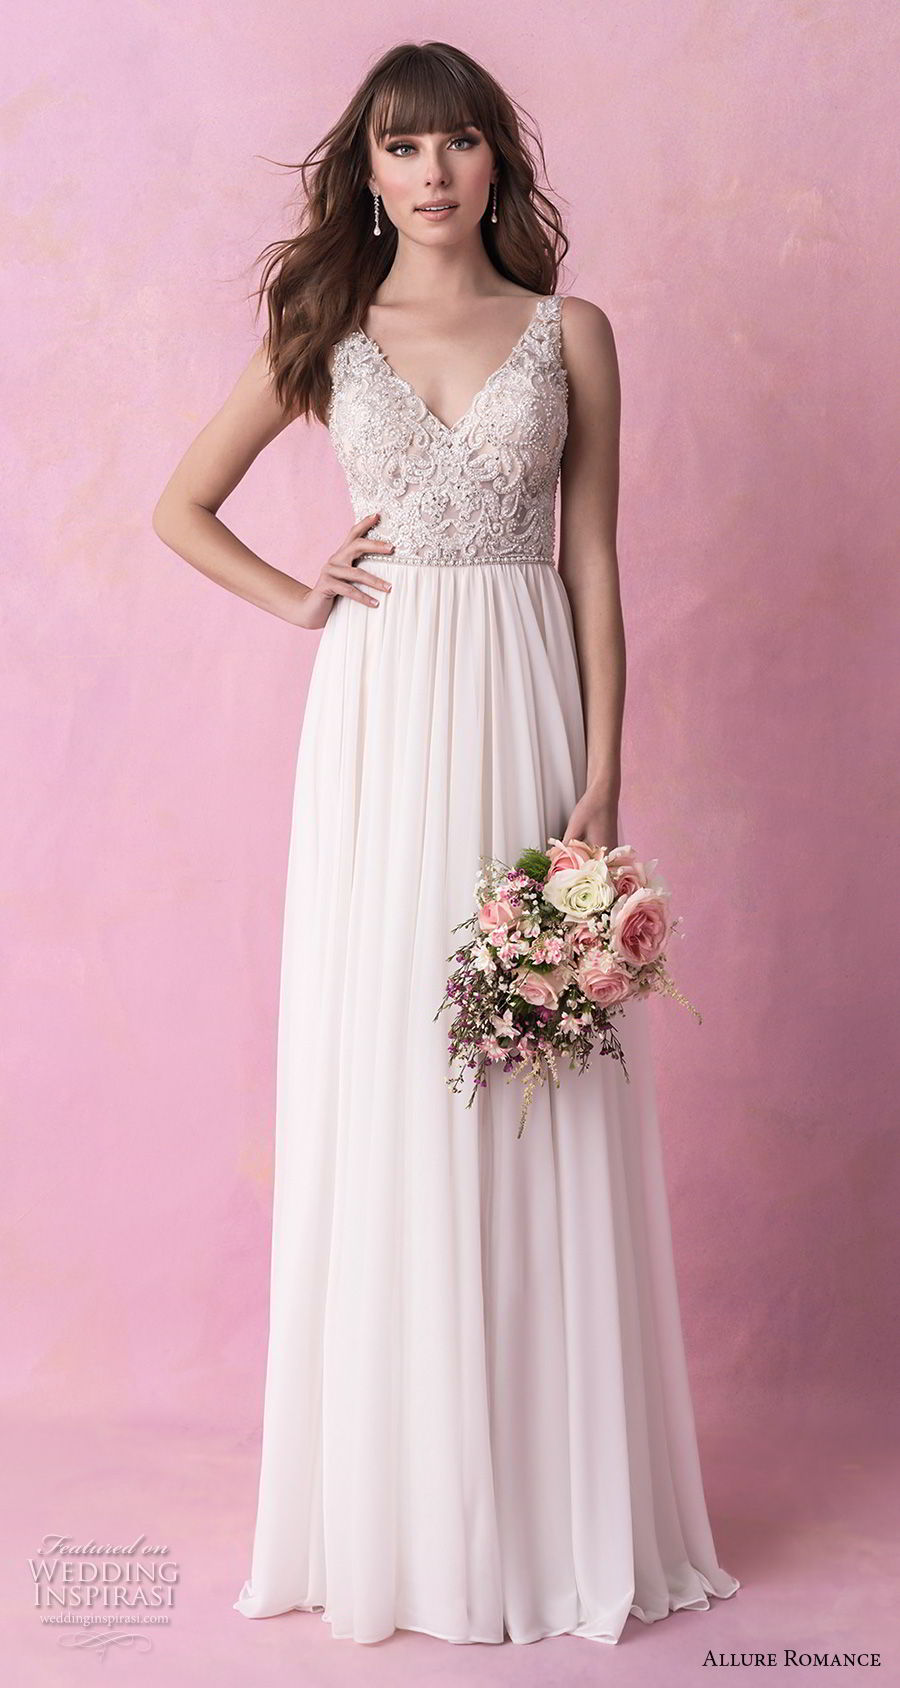 allure romance fall 2018 bridal sleeveless v neck heavily embellished bodice romantic soft a  line wedding dress open v back chapel train (14) mv